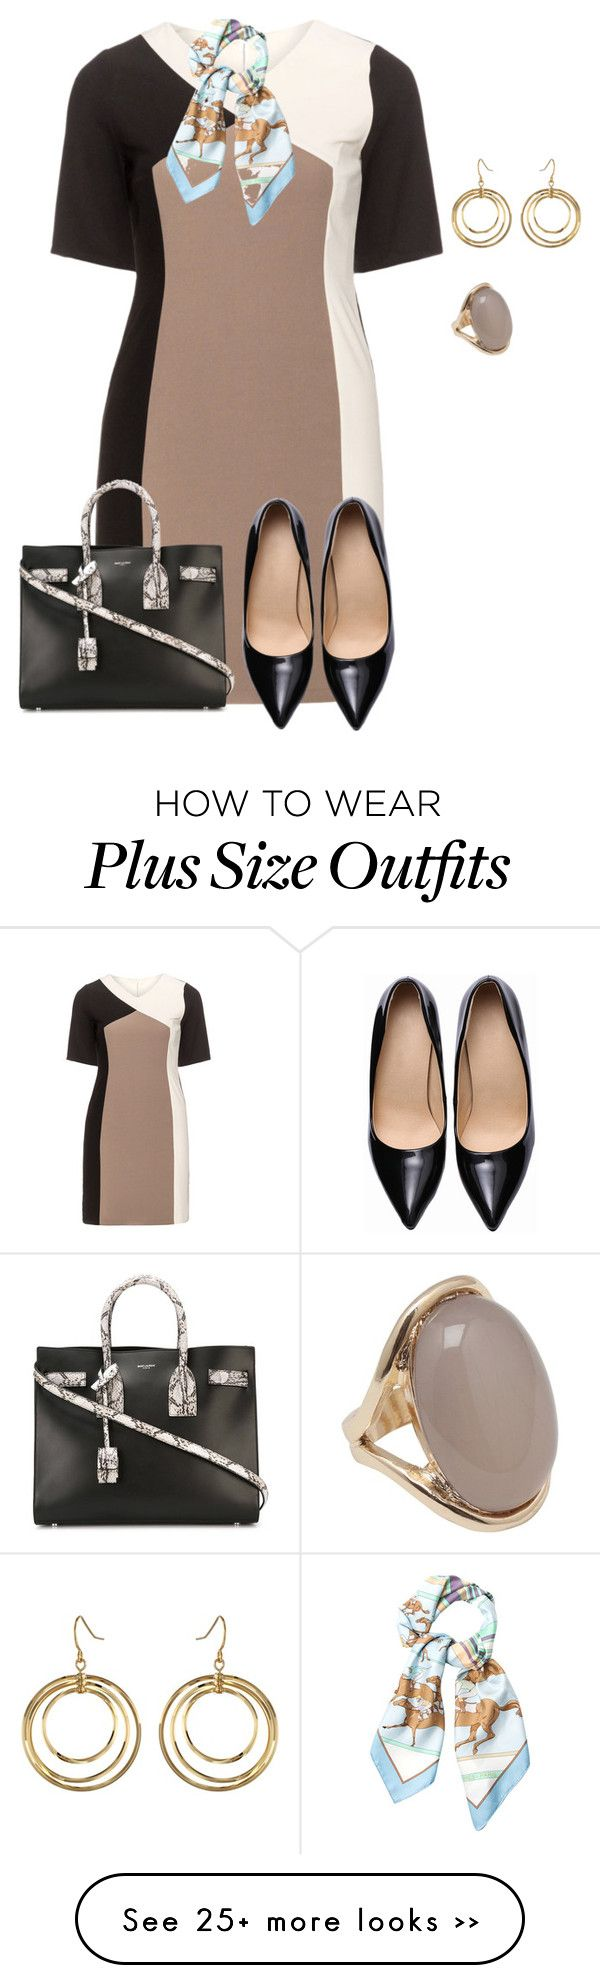 """""""plus size monday business"""" by kristie-payne on Polyvore"""